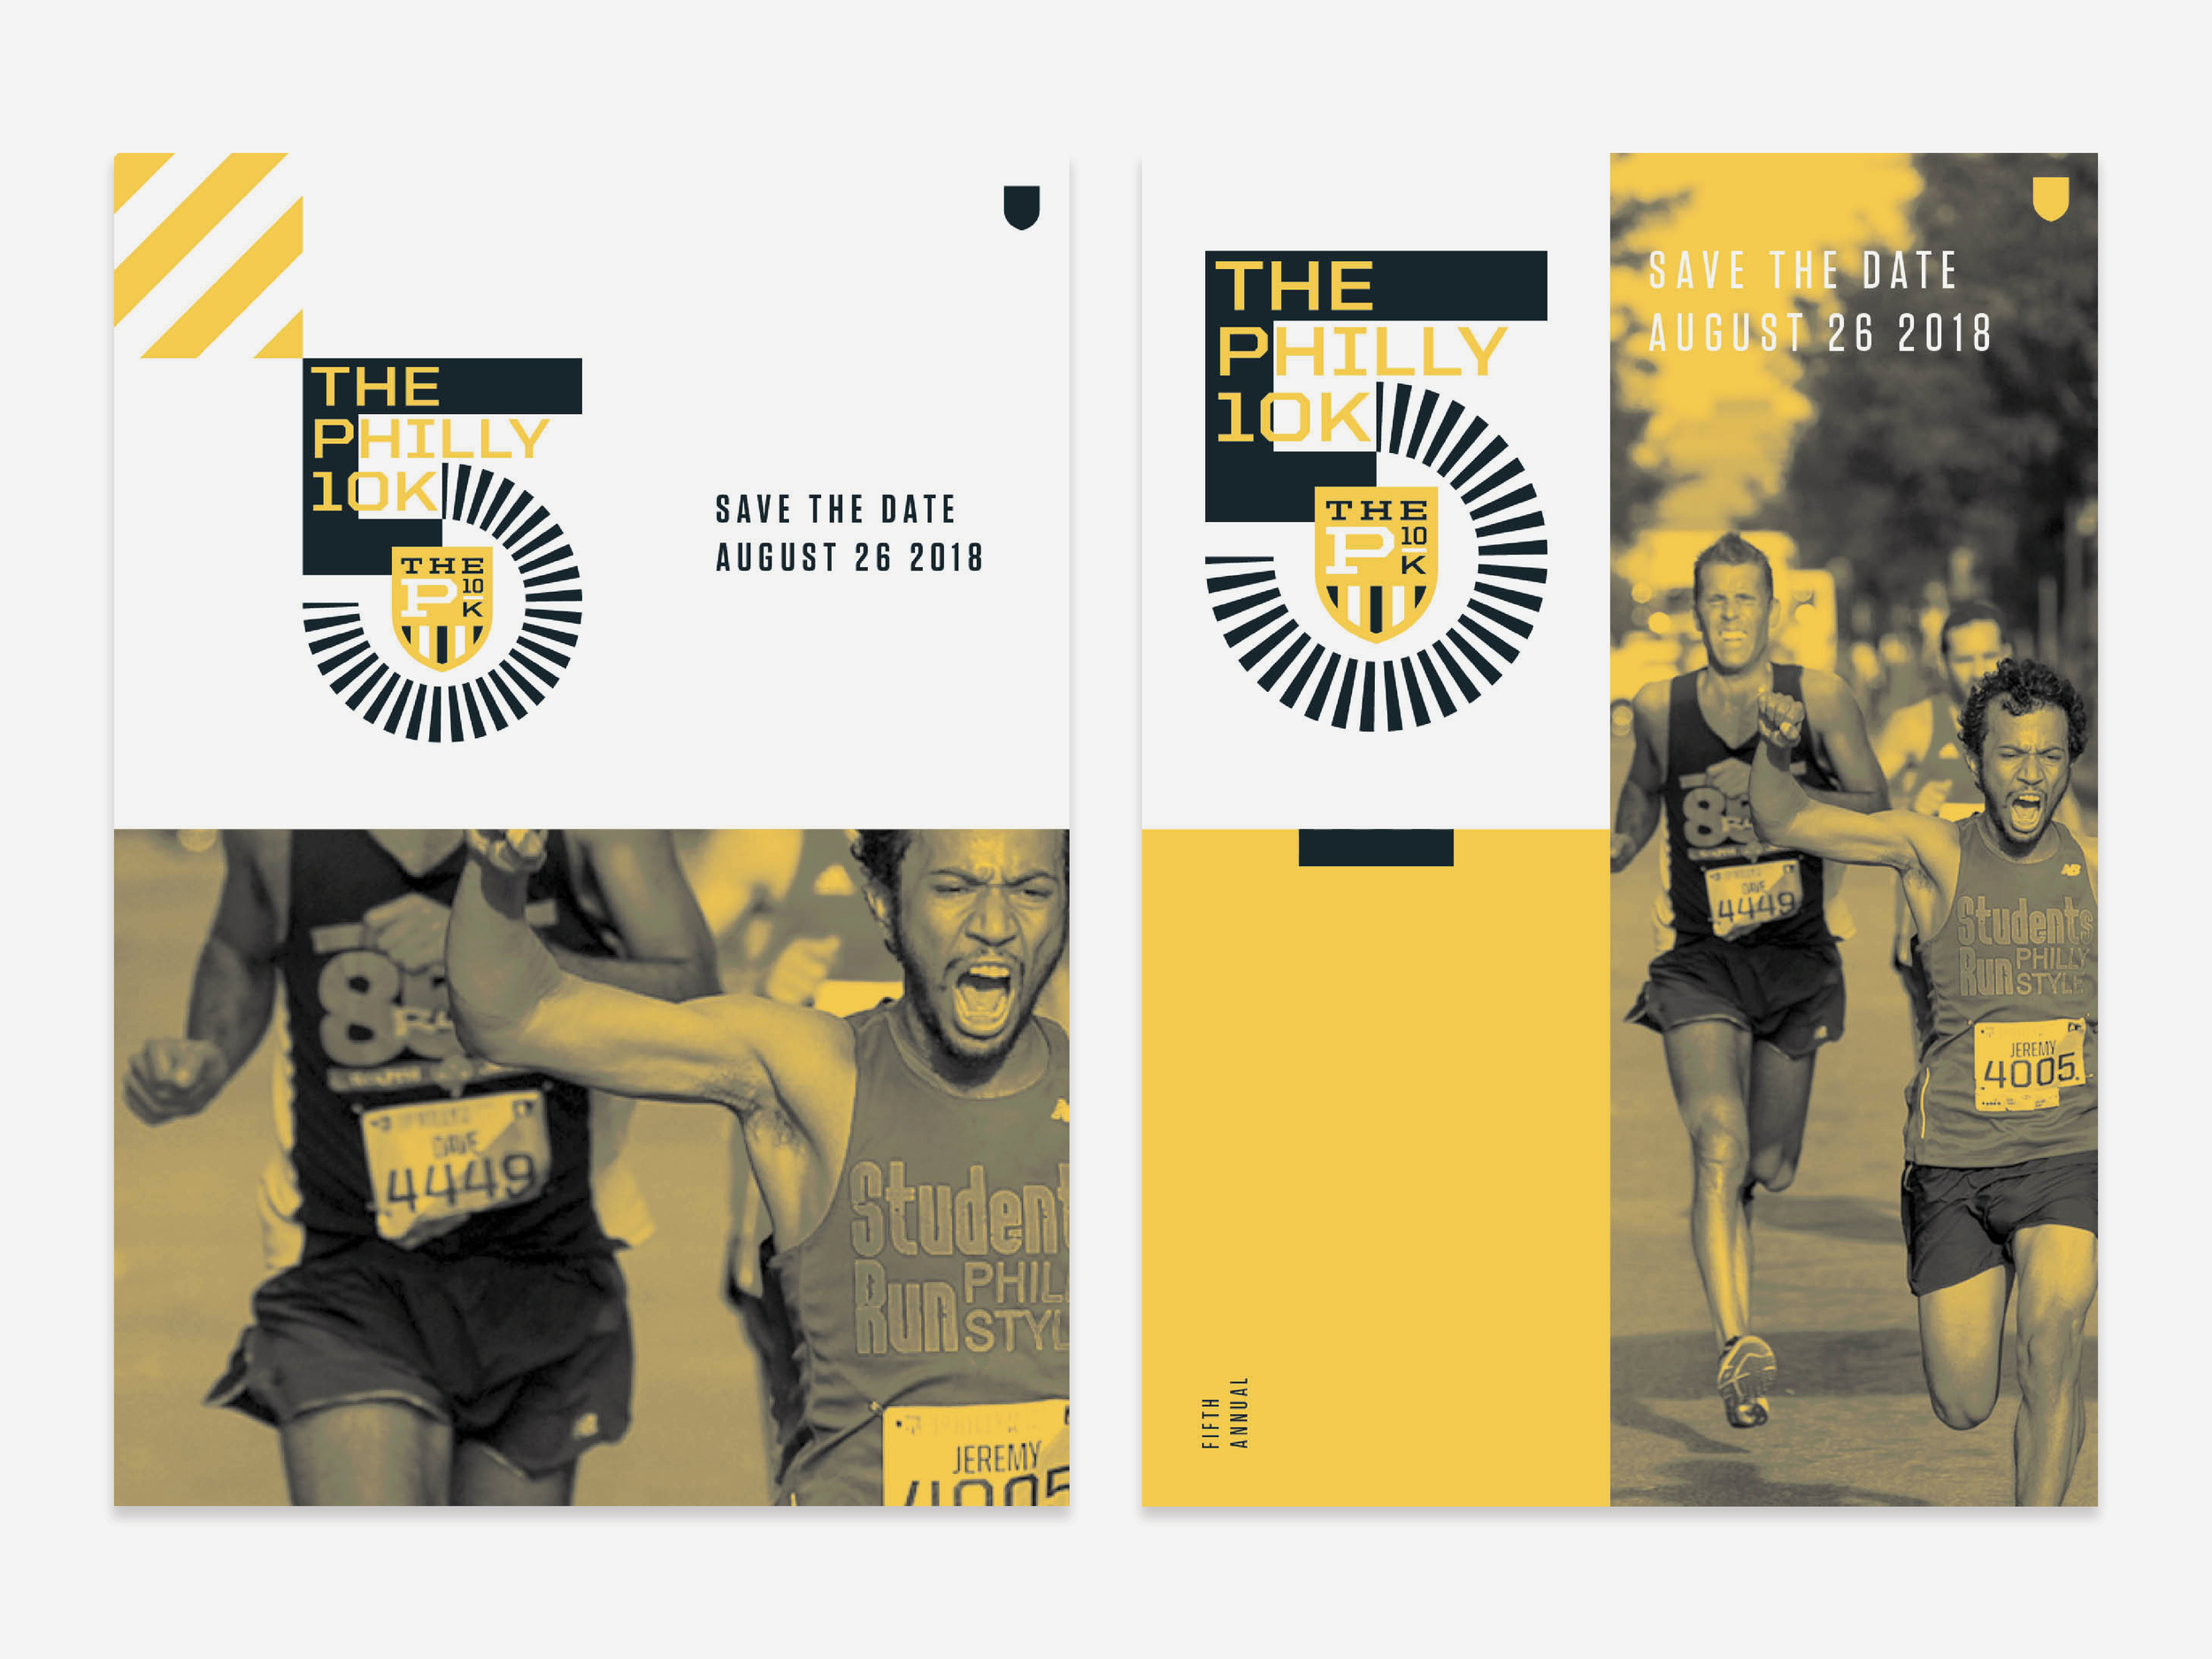 15 The Philly 10K marketing material.png